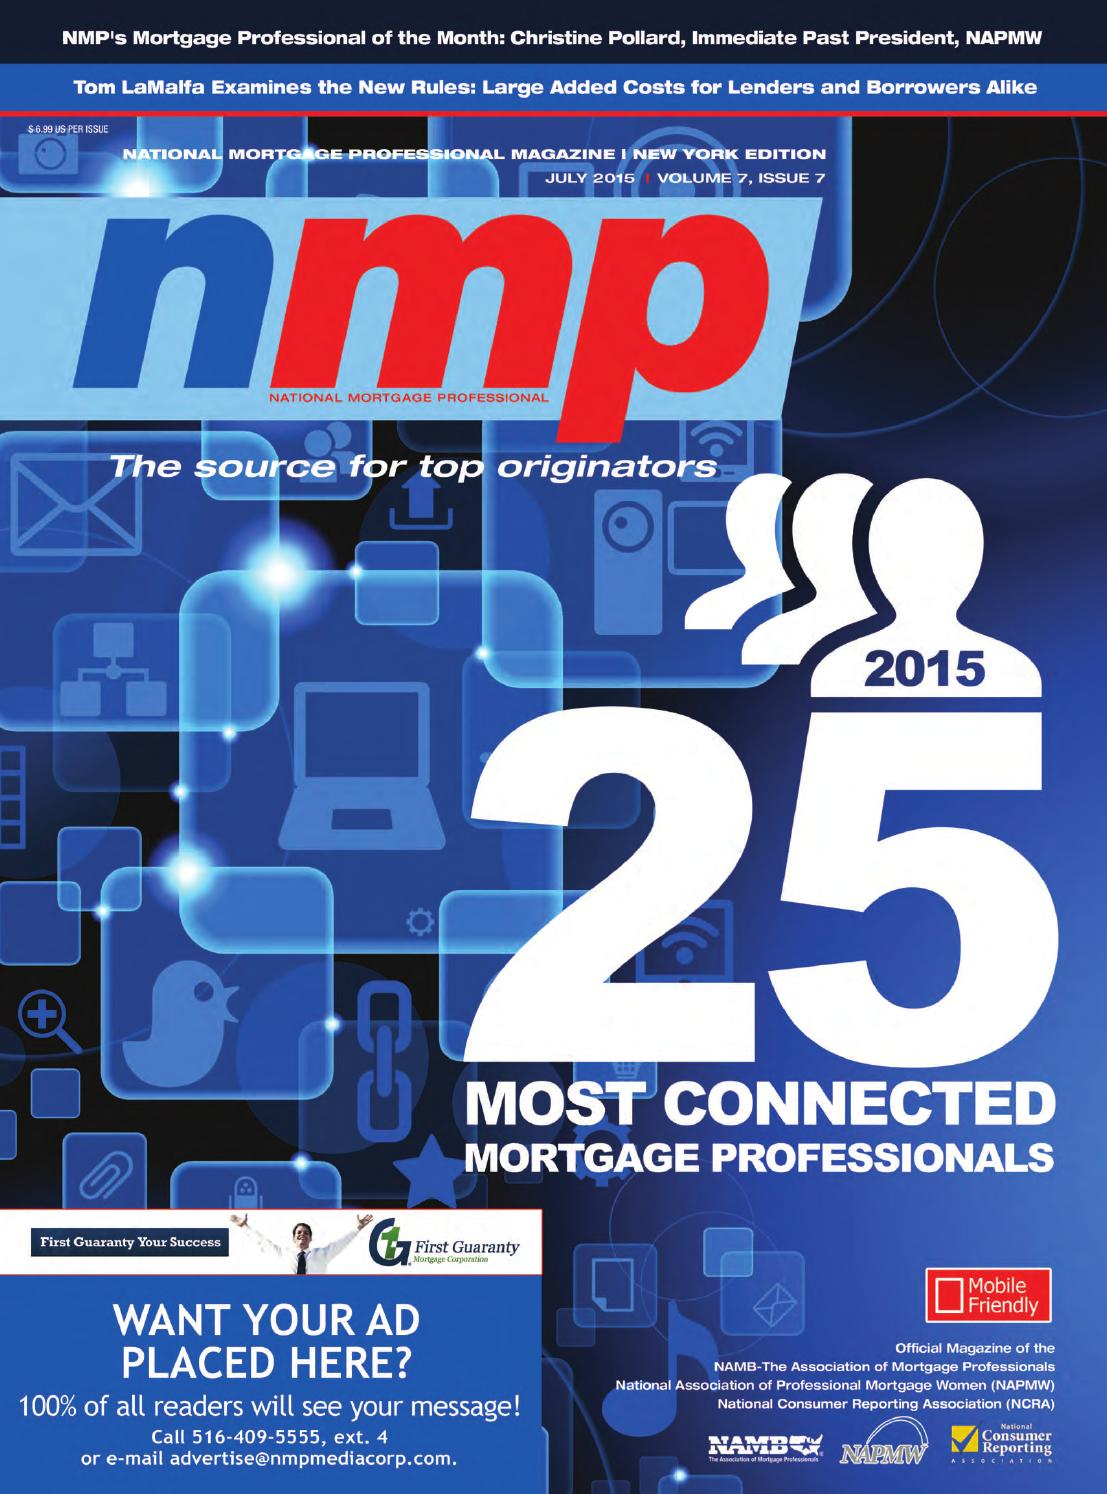 New York Mortgage Professional Magazine July 2015 by NMP